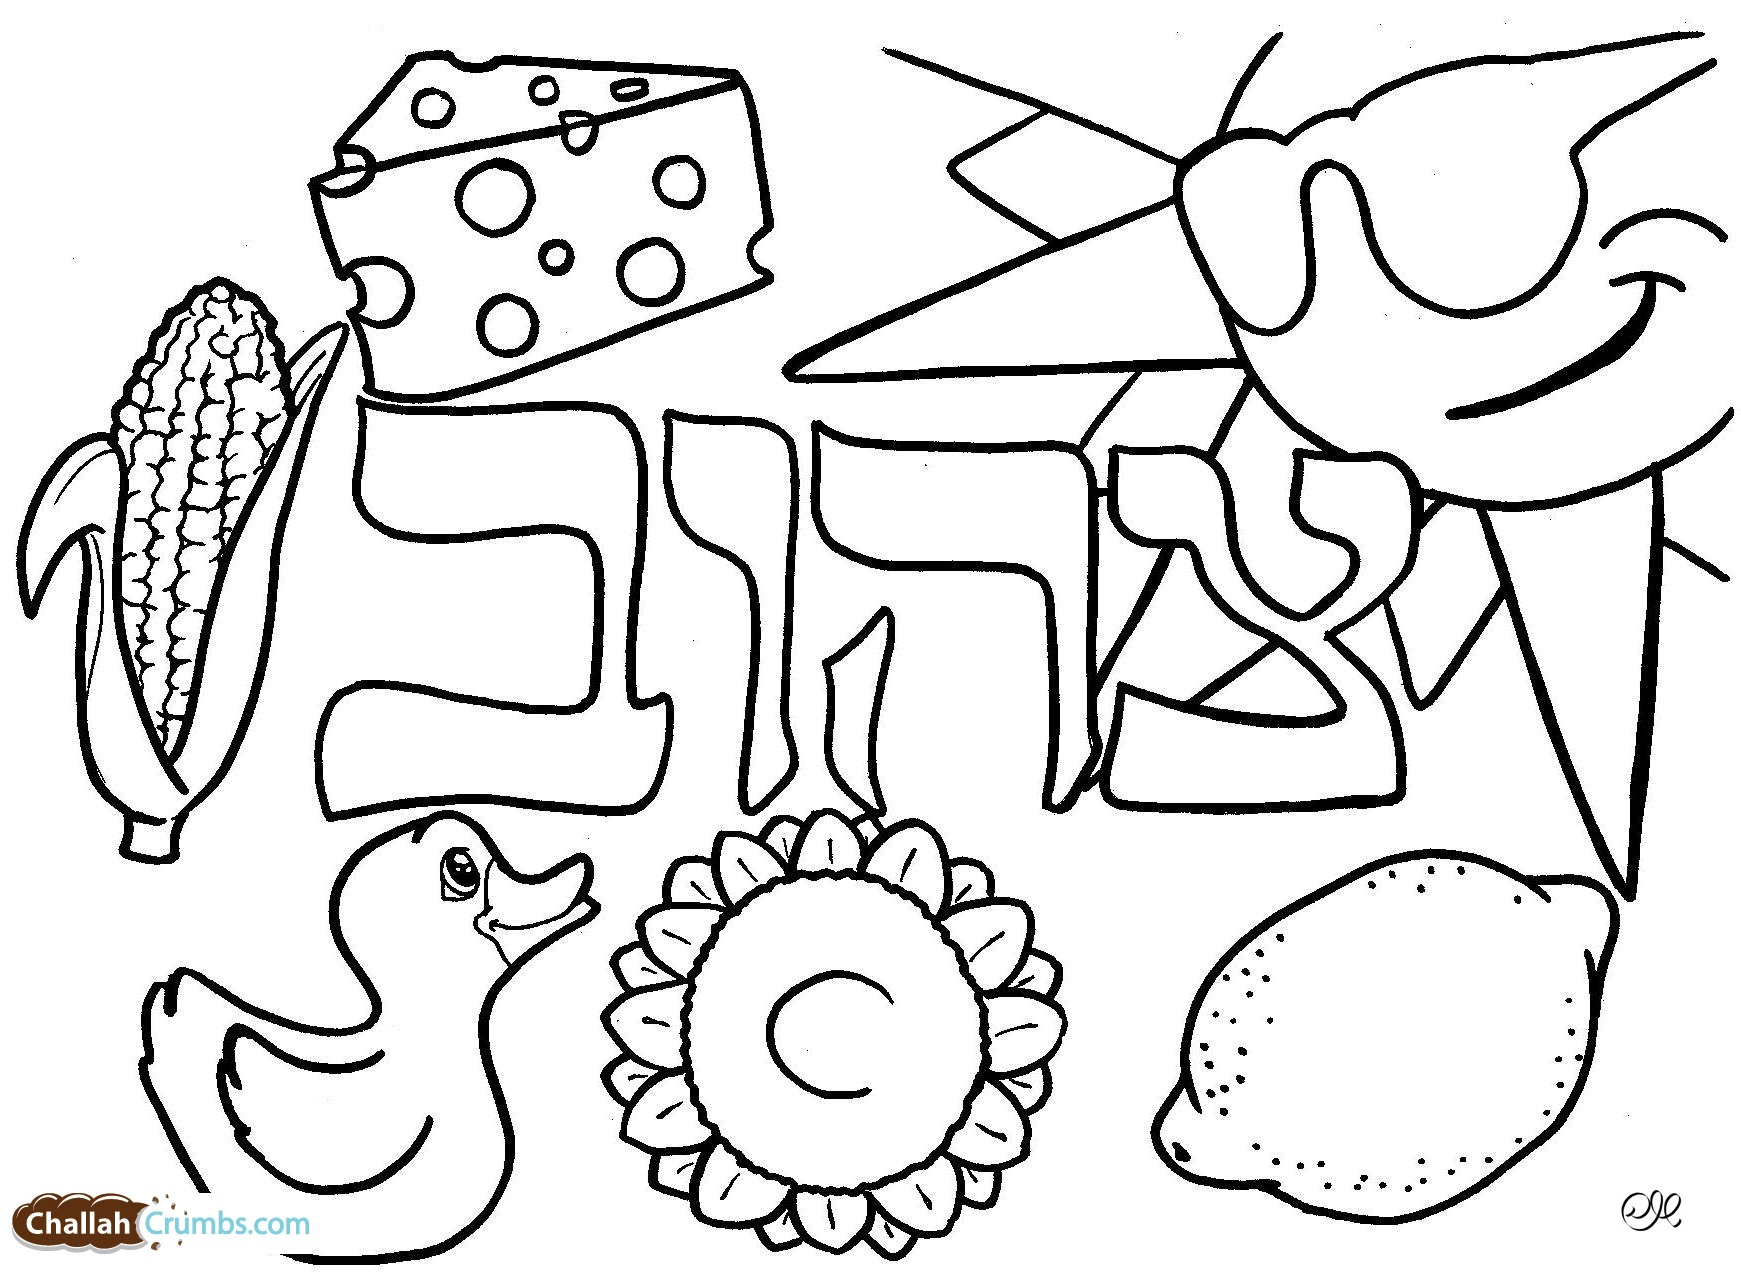 challah coloring pages - photo#24